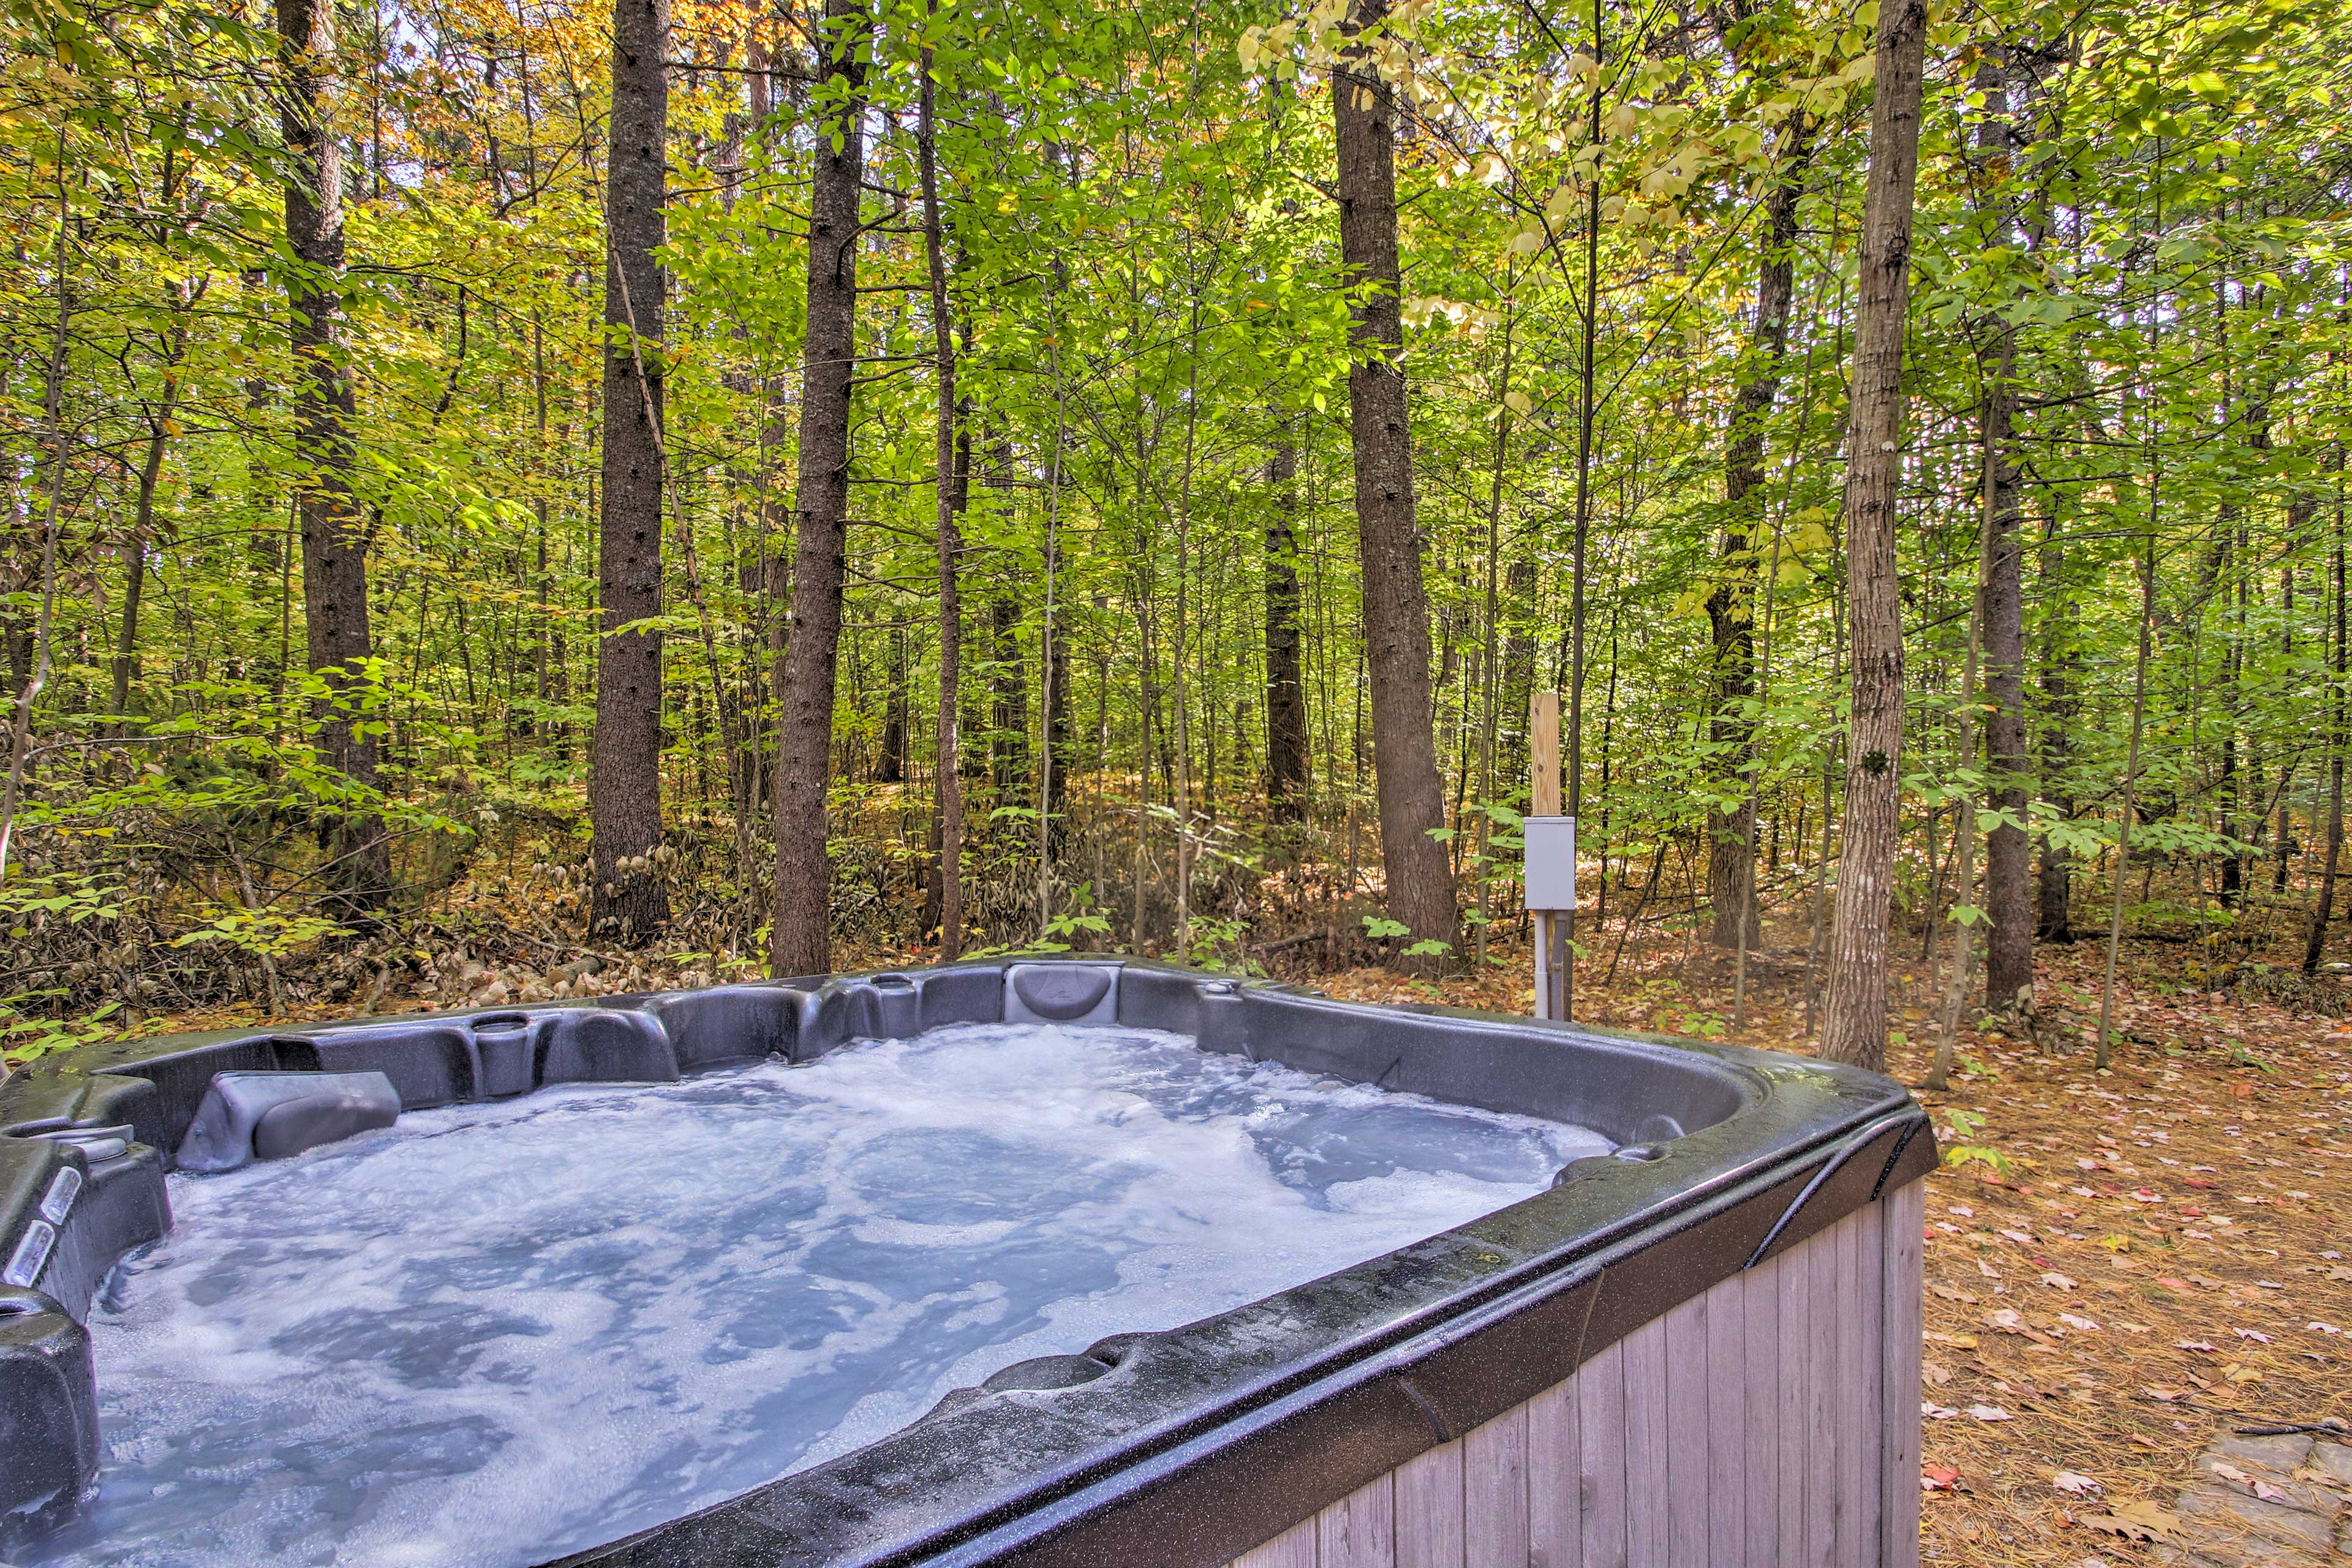 End each day with a long soak in the private hot tub.